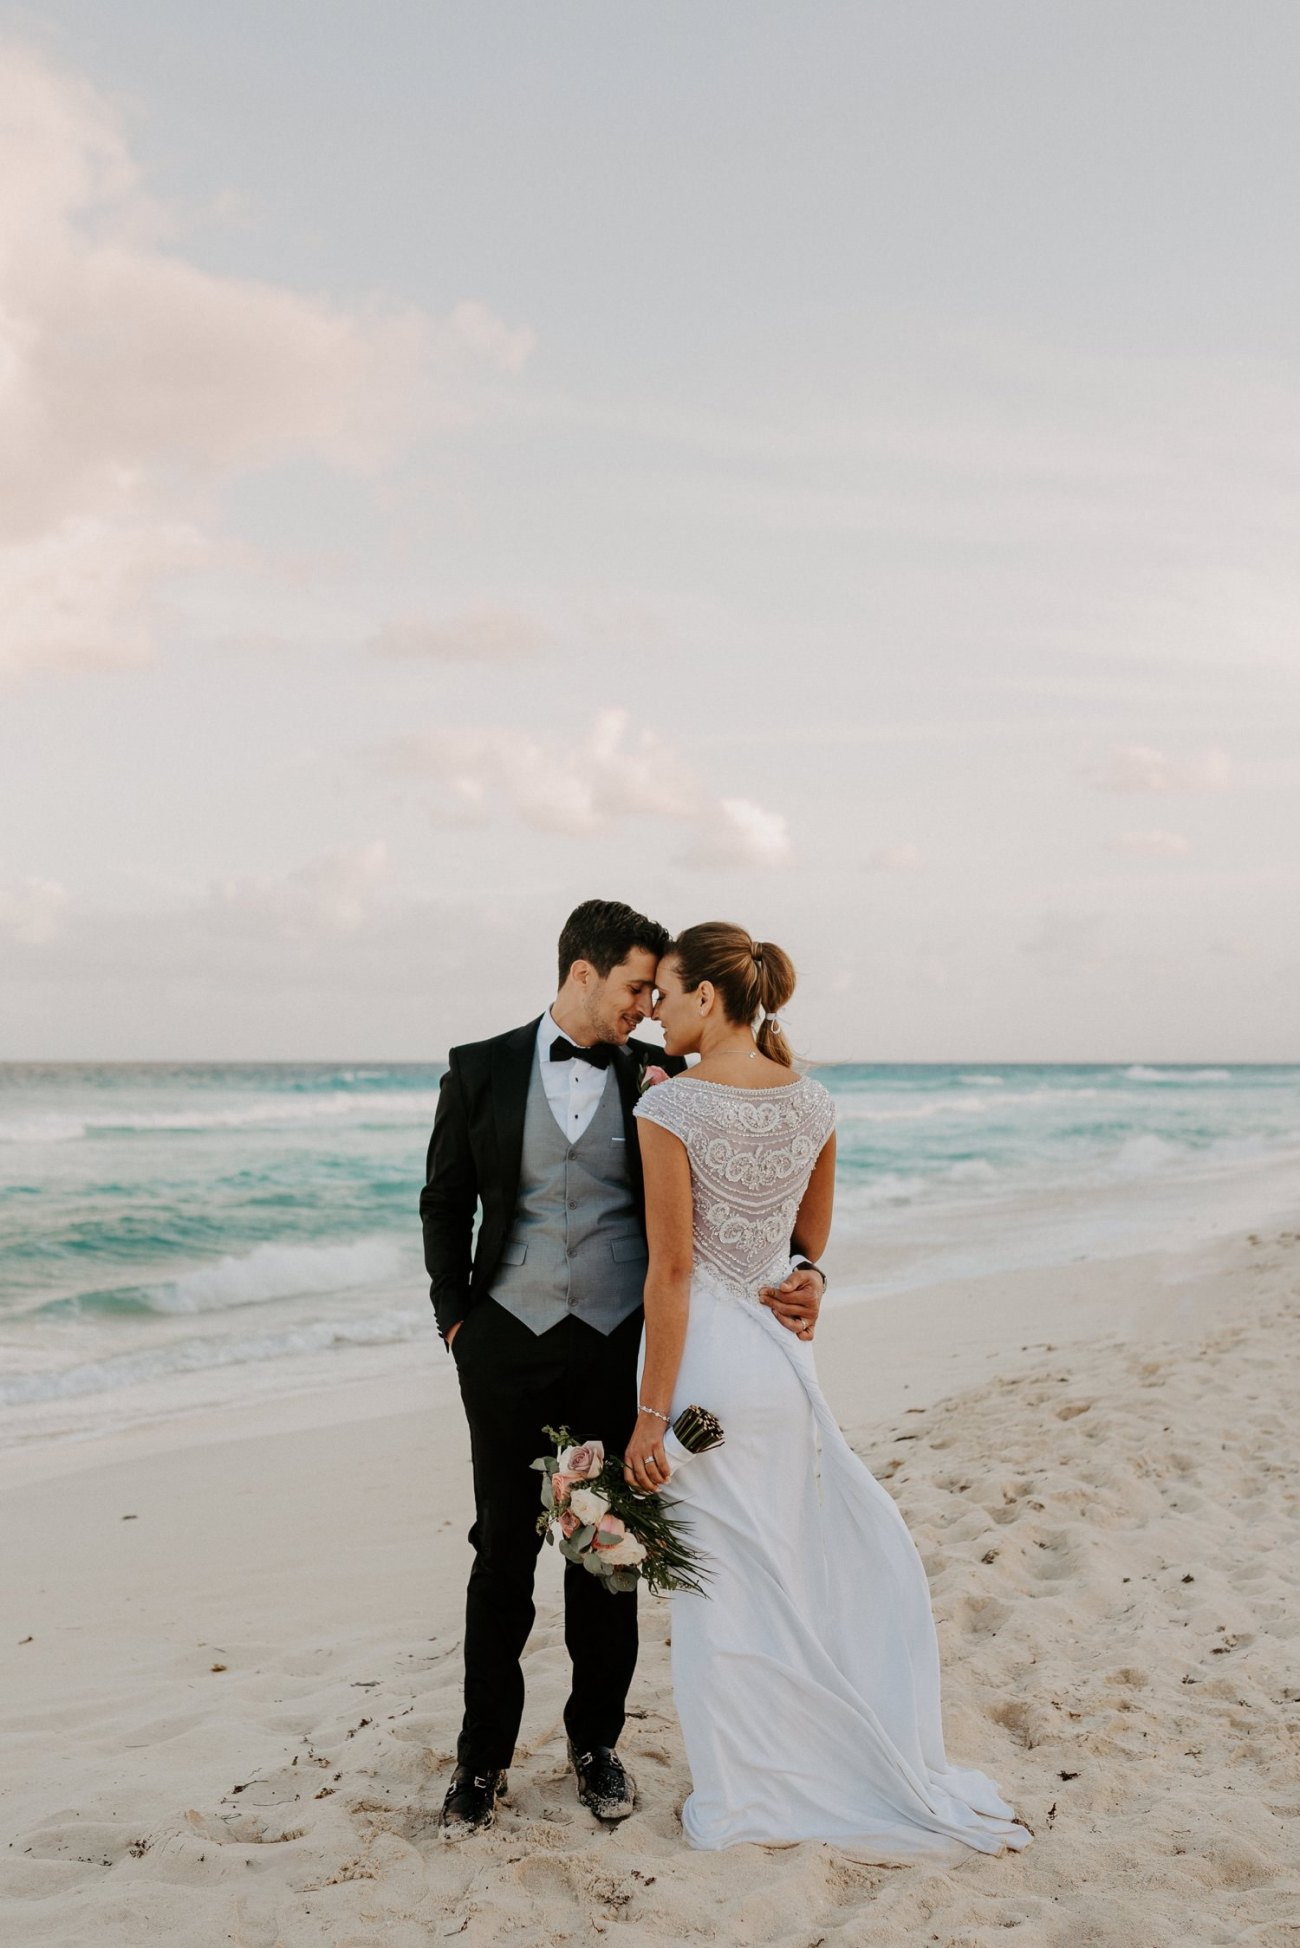 Cancun Destination Wedding Mexico Tulum Wedding Photographer Anais Possamai Photography 046